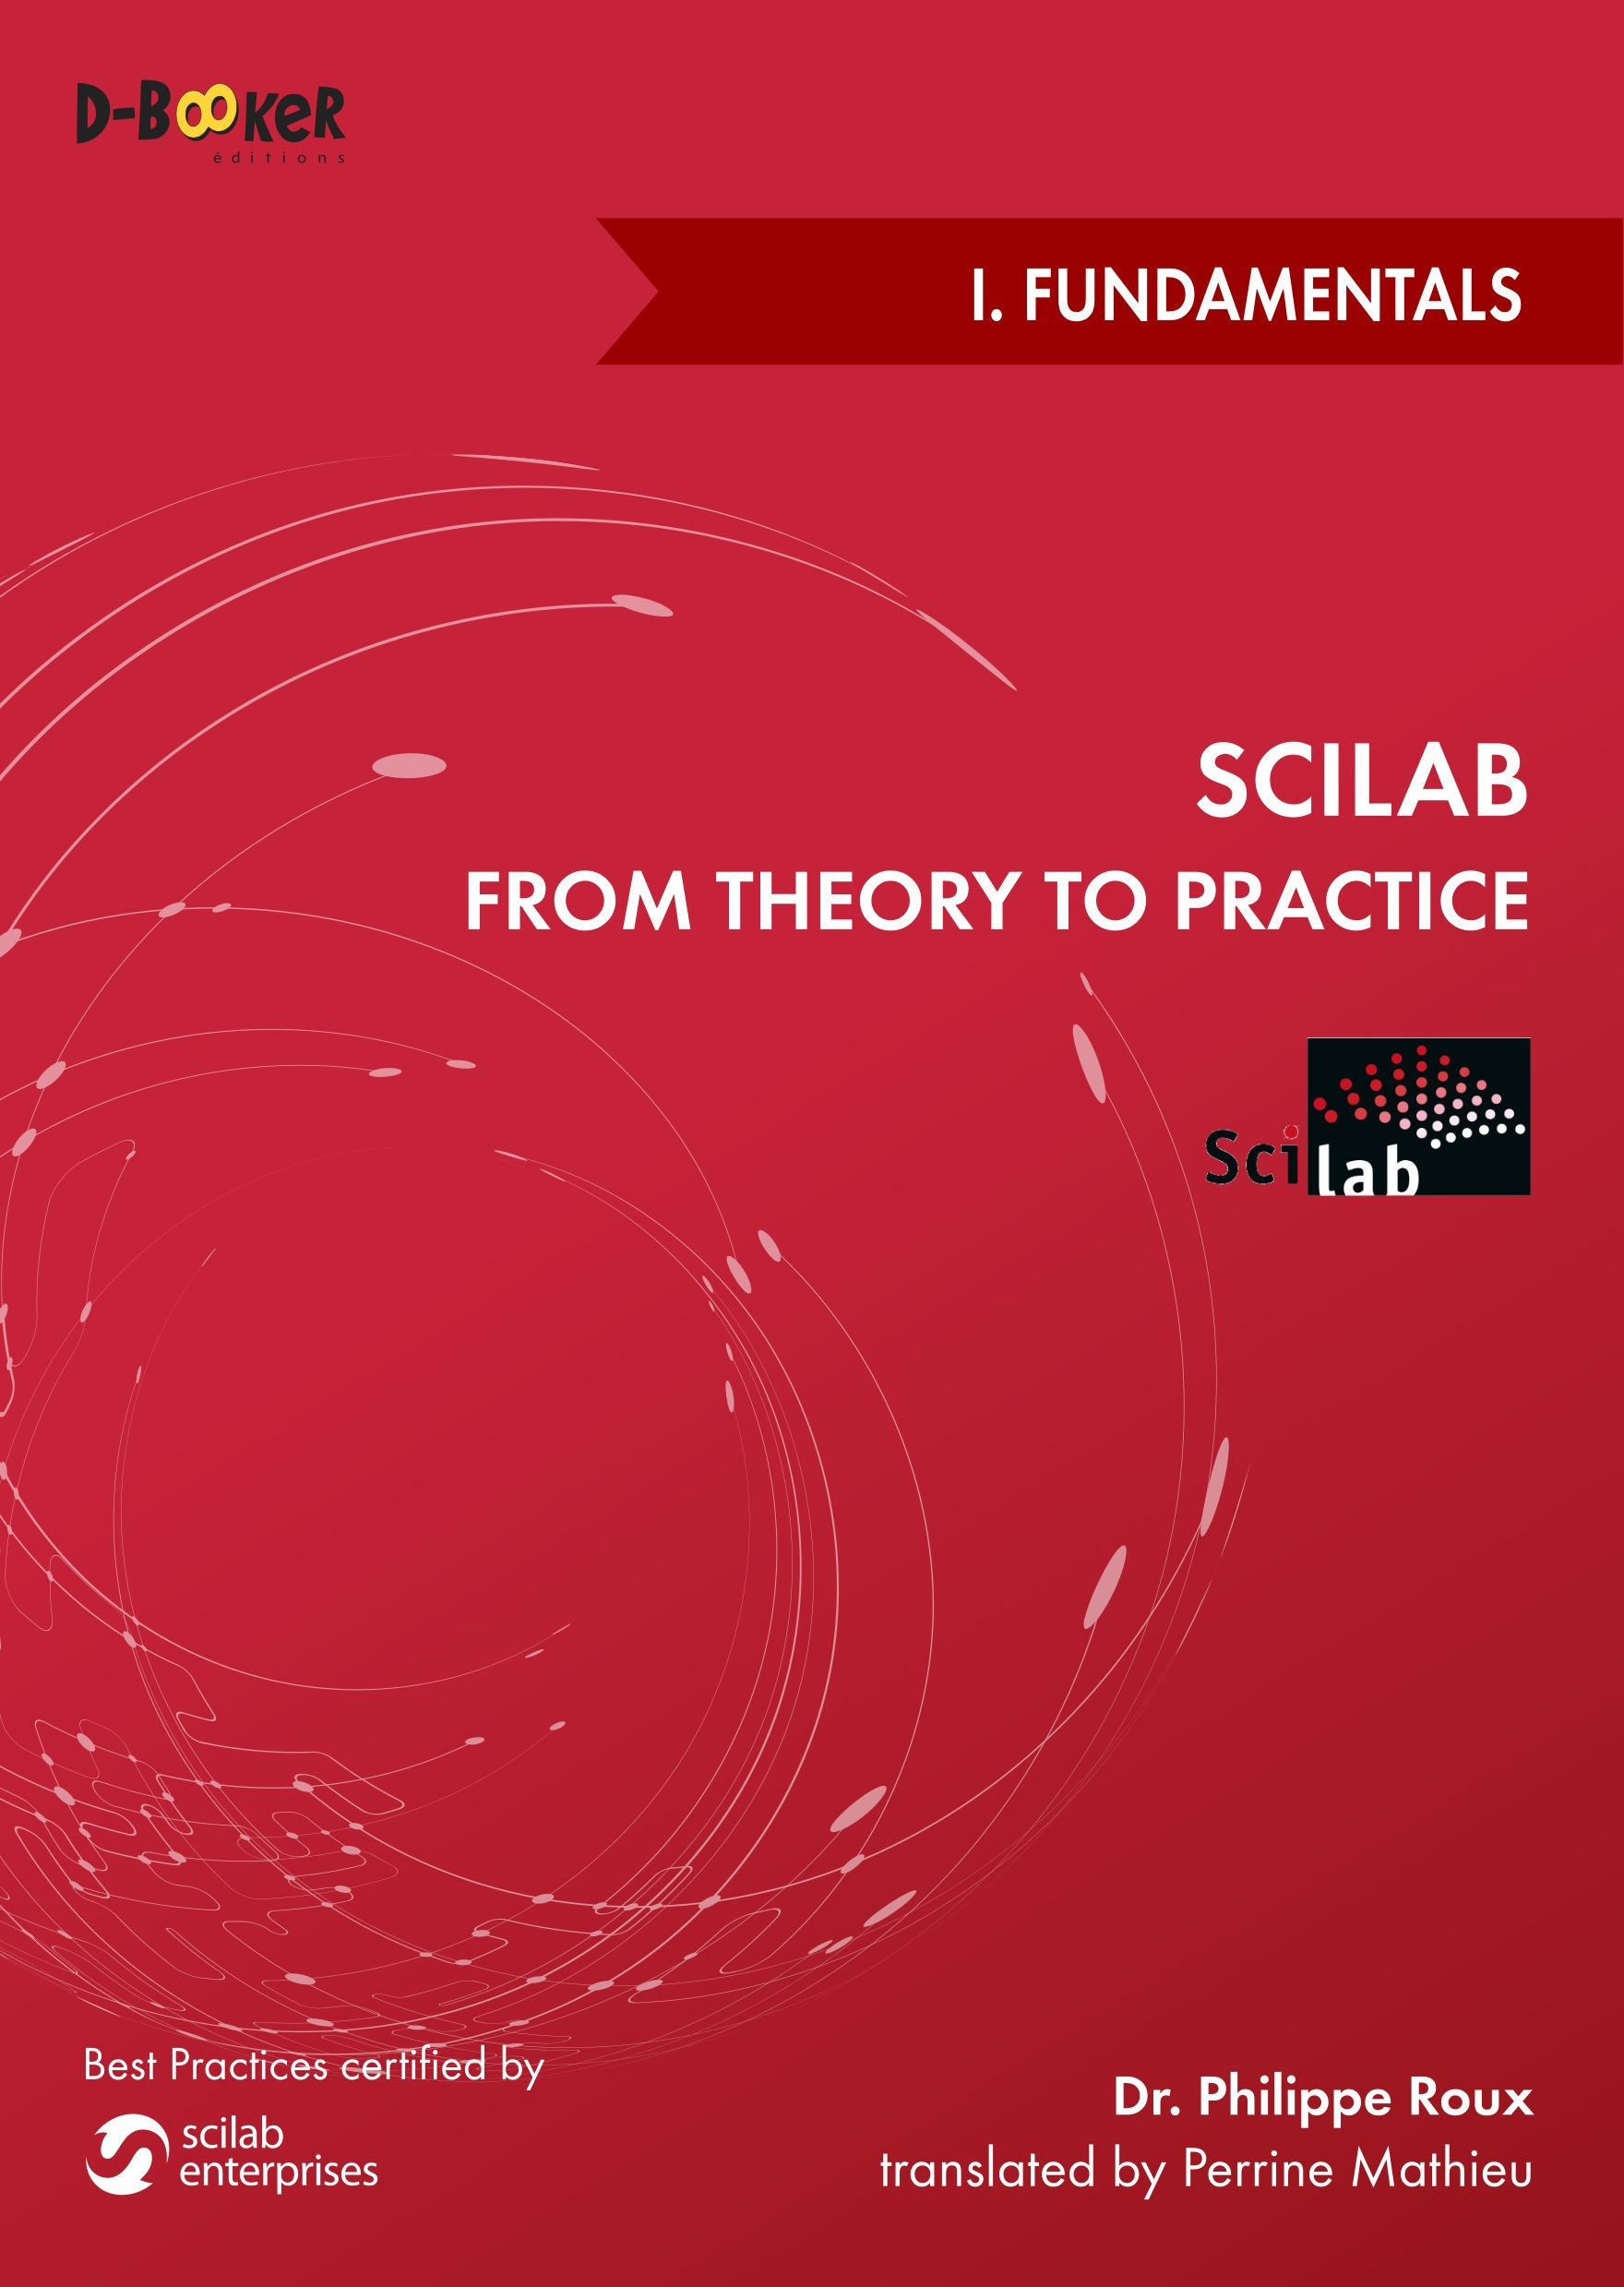 Scilab: from theory to practice t.1 ; fundamentals